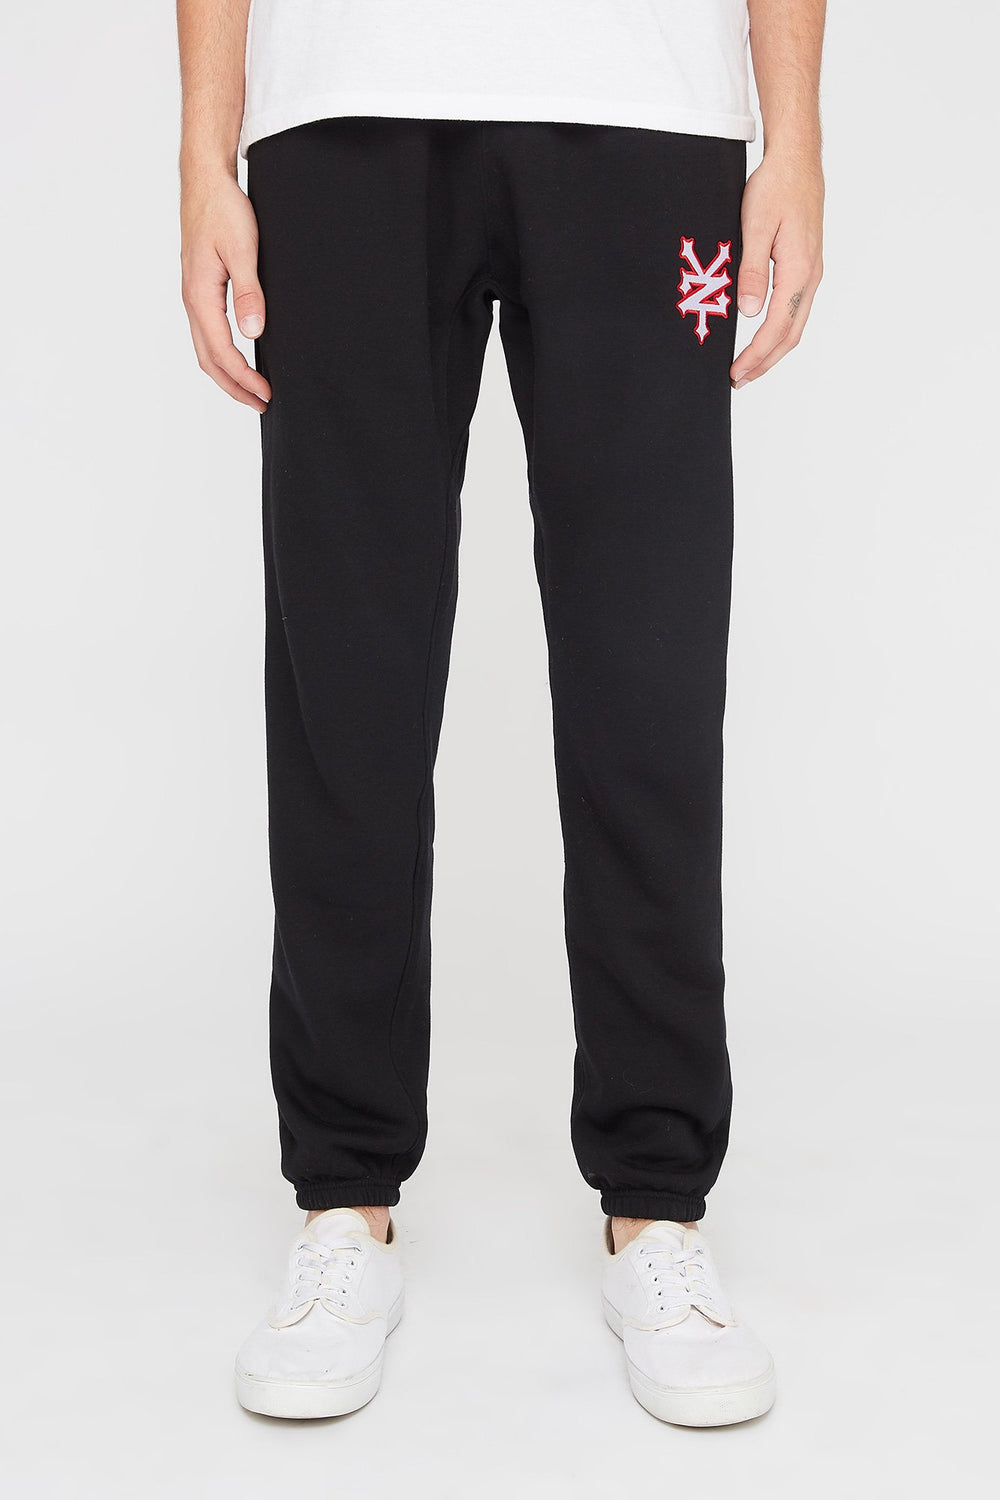 Zoo York Mens Embroidered Logo Joggers Black